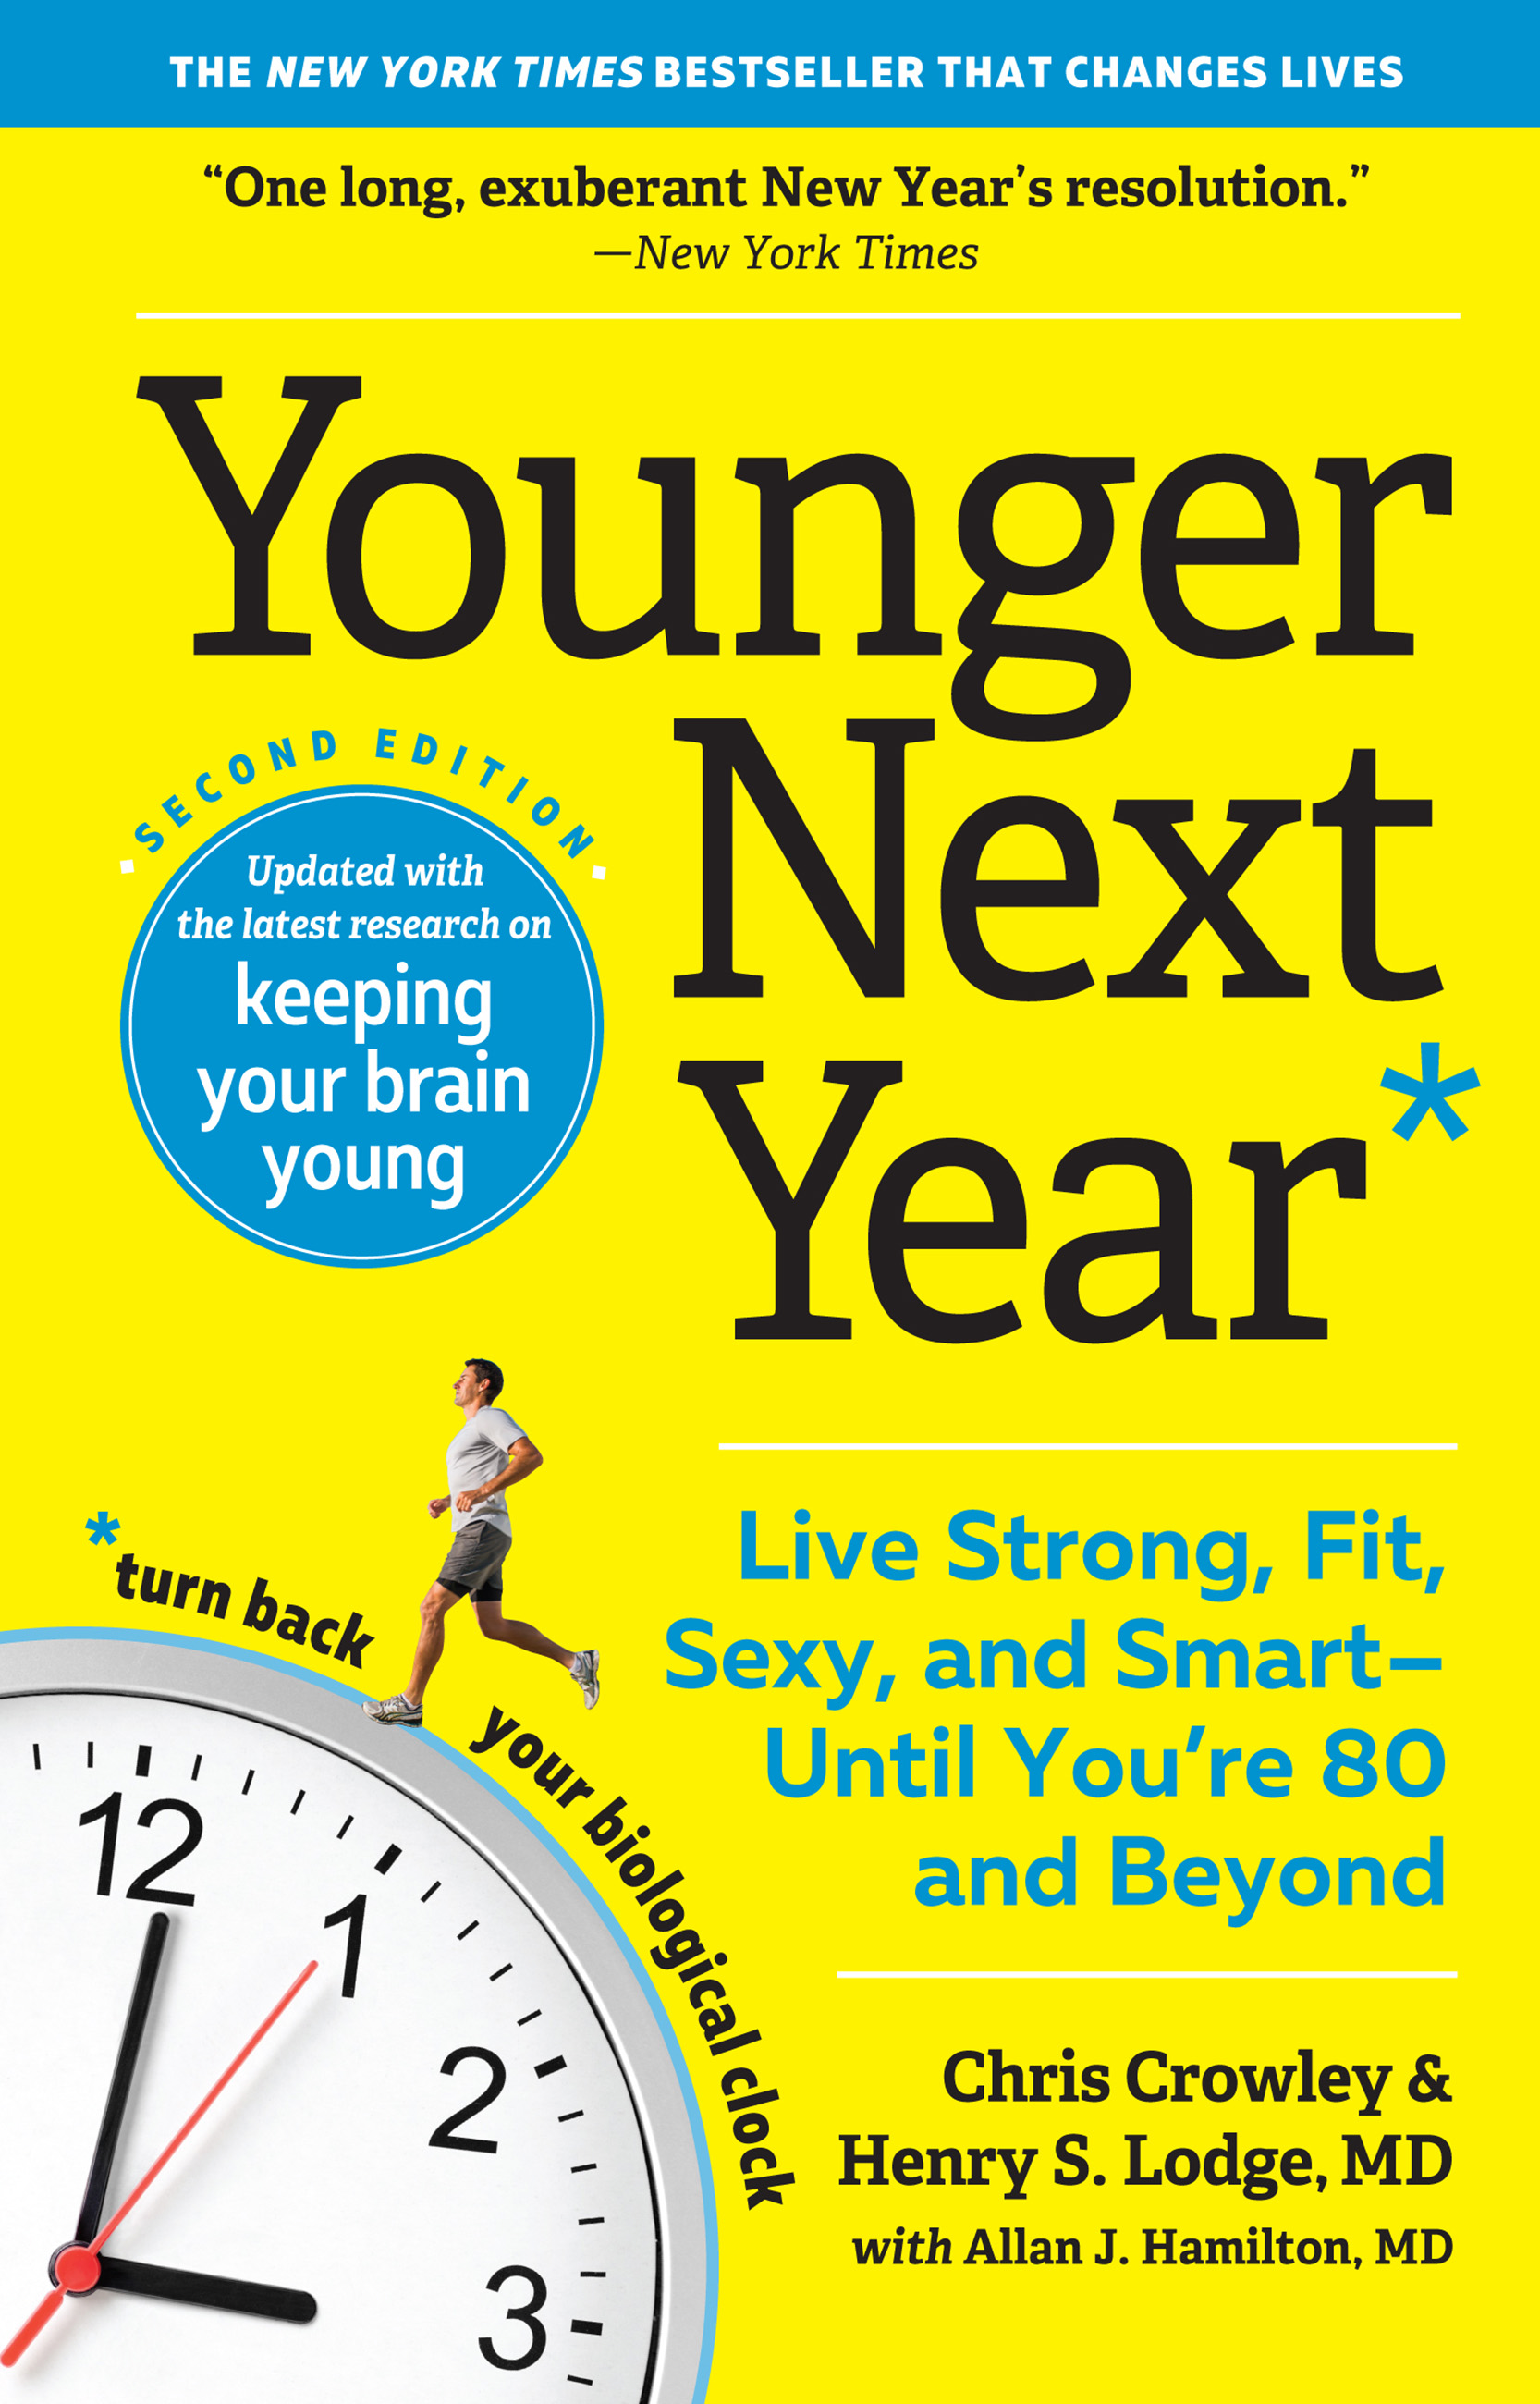 Younger next year live strong, fit, and sexy--until you're 80 and beyond cover image